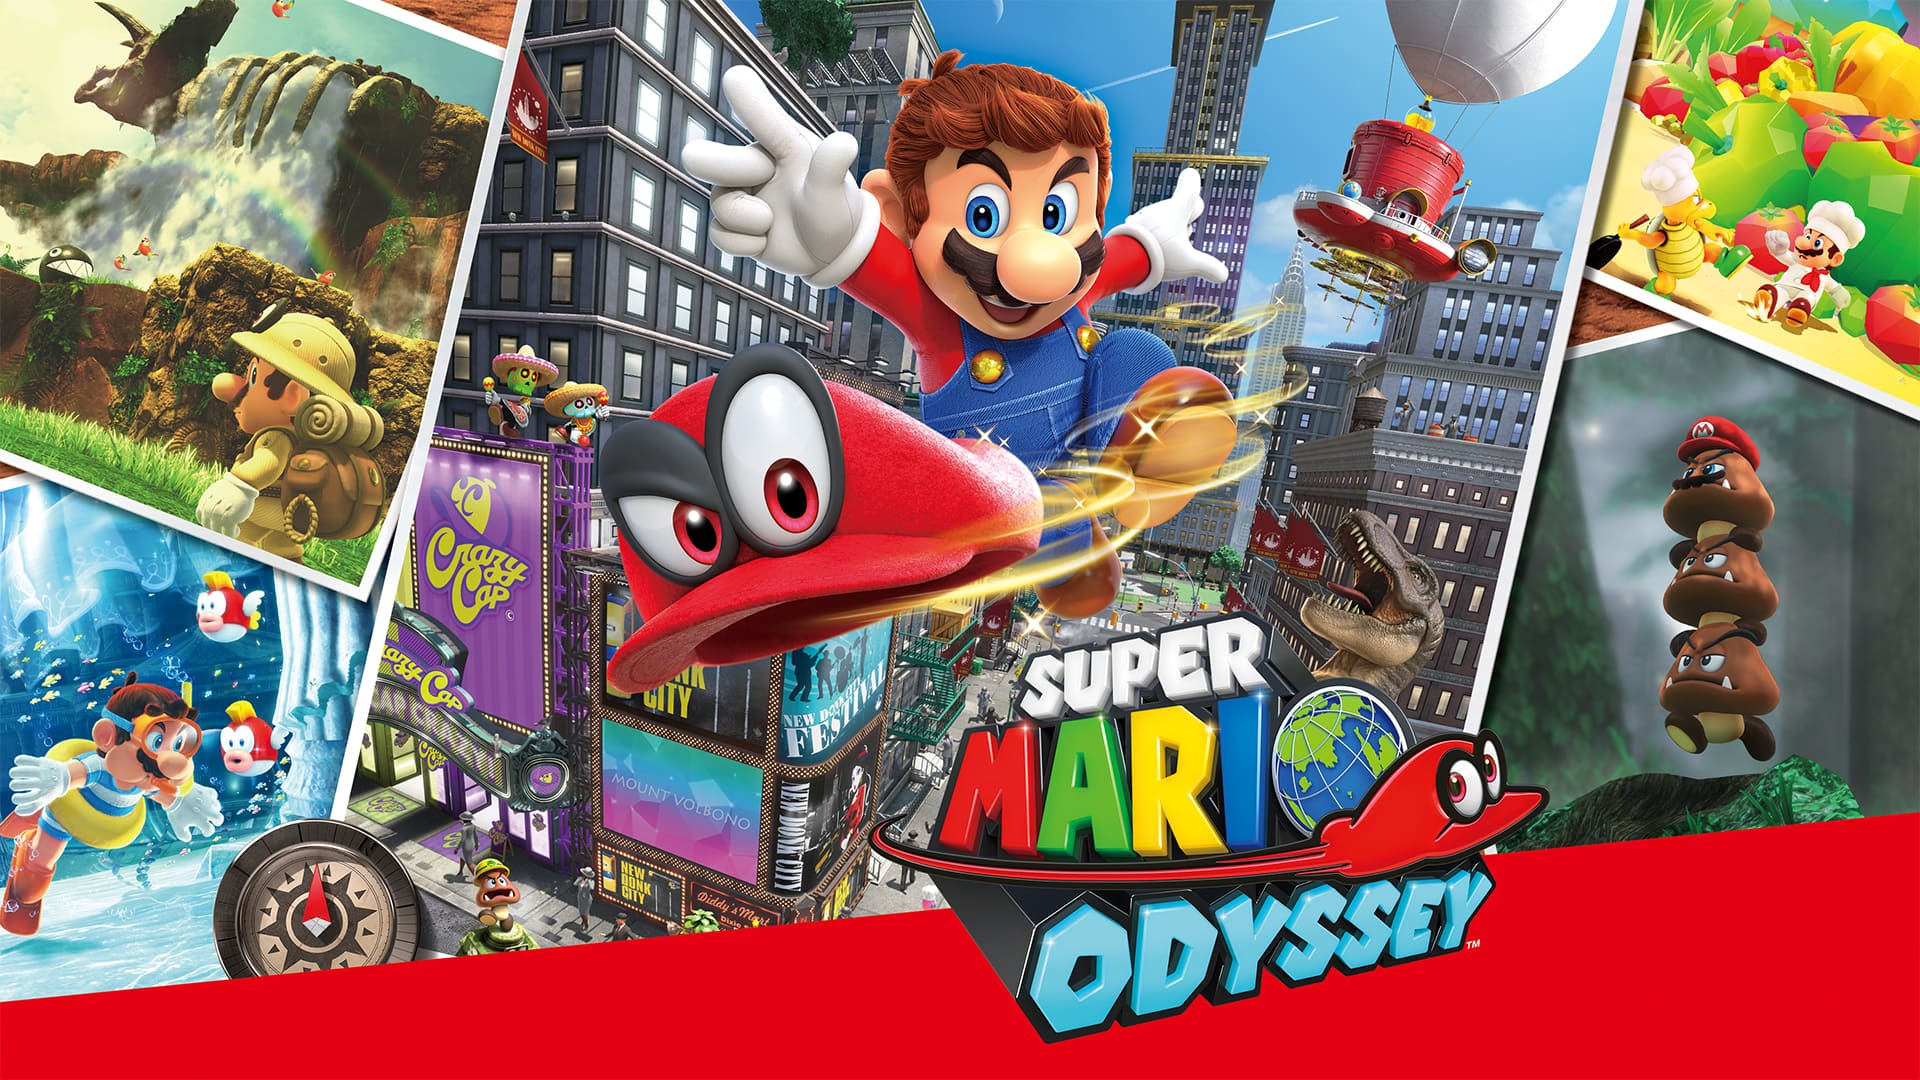 Nintendo Switch Digital Games Super Mario Odyssey Or Mario Kart 8